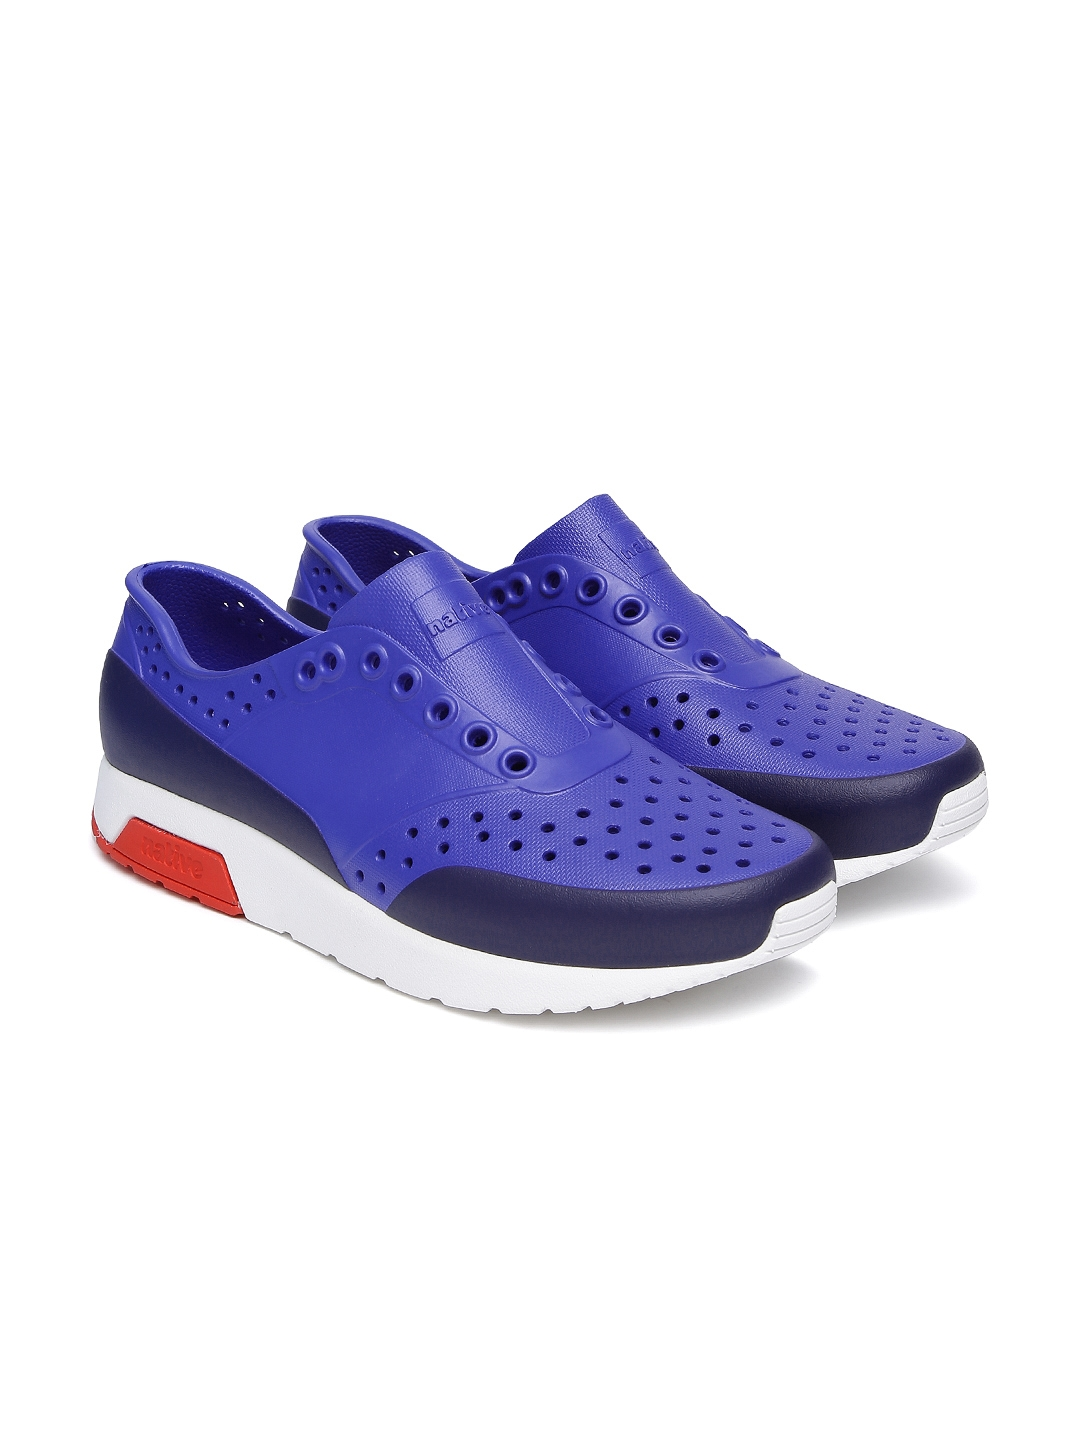 e2010ec68b119 Buy Native Shoes Unisex Blue Lennox Slip On Sneakers - Casual Shoes ...